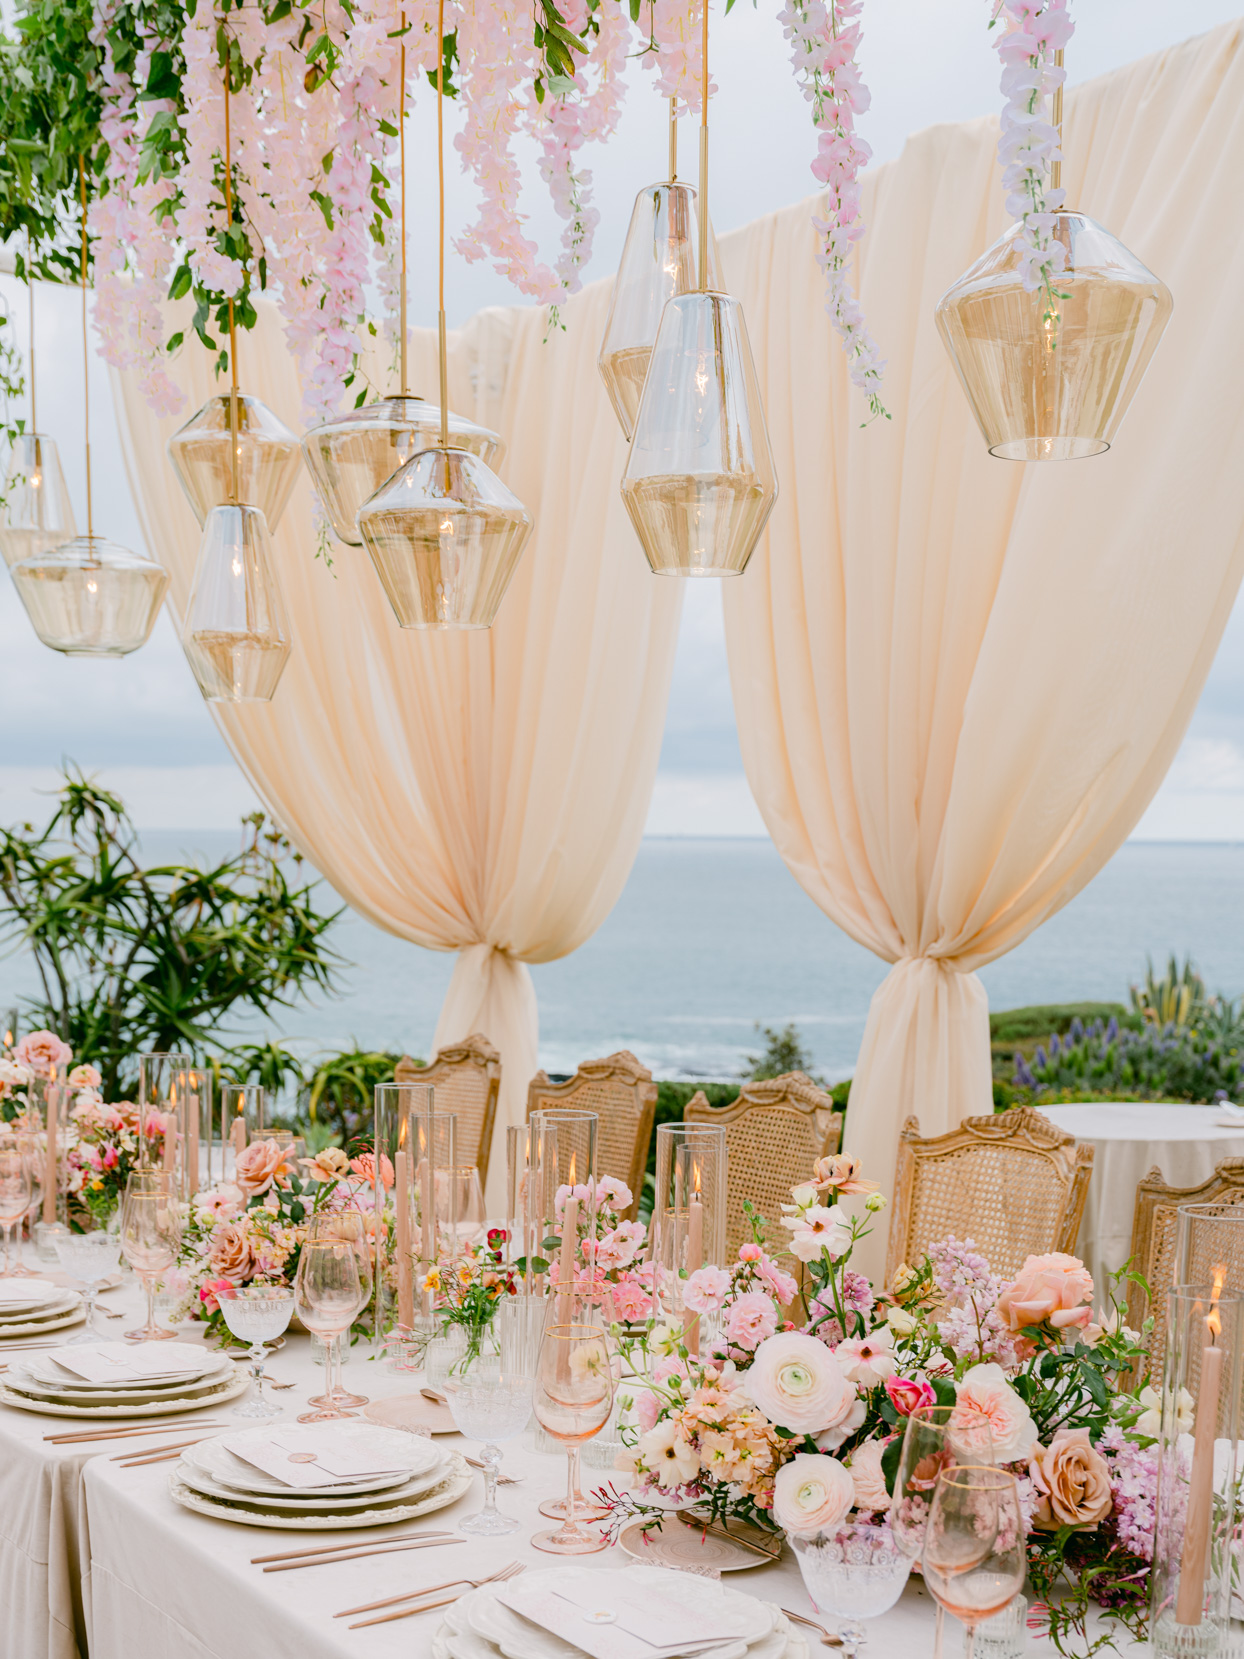 glass lighting fixtures over floral decor covered reception table